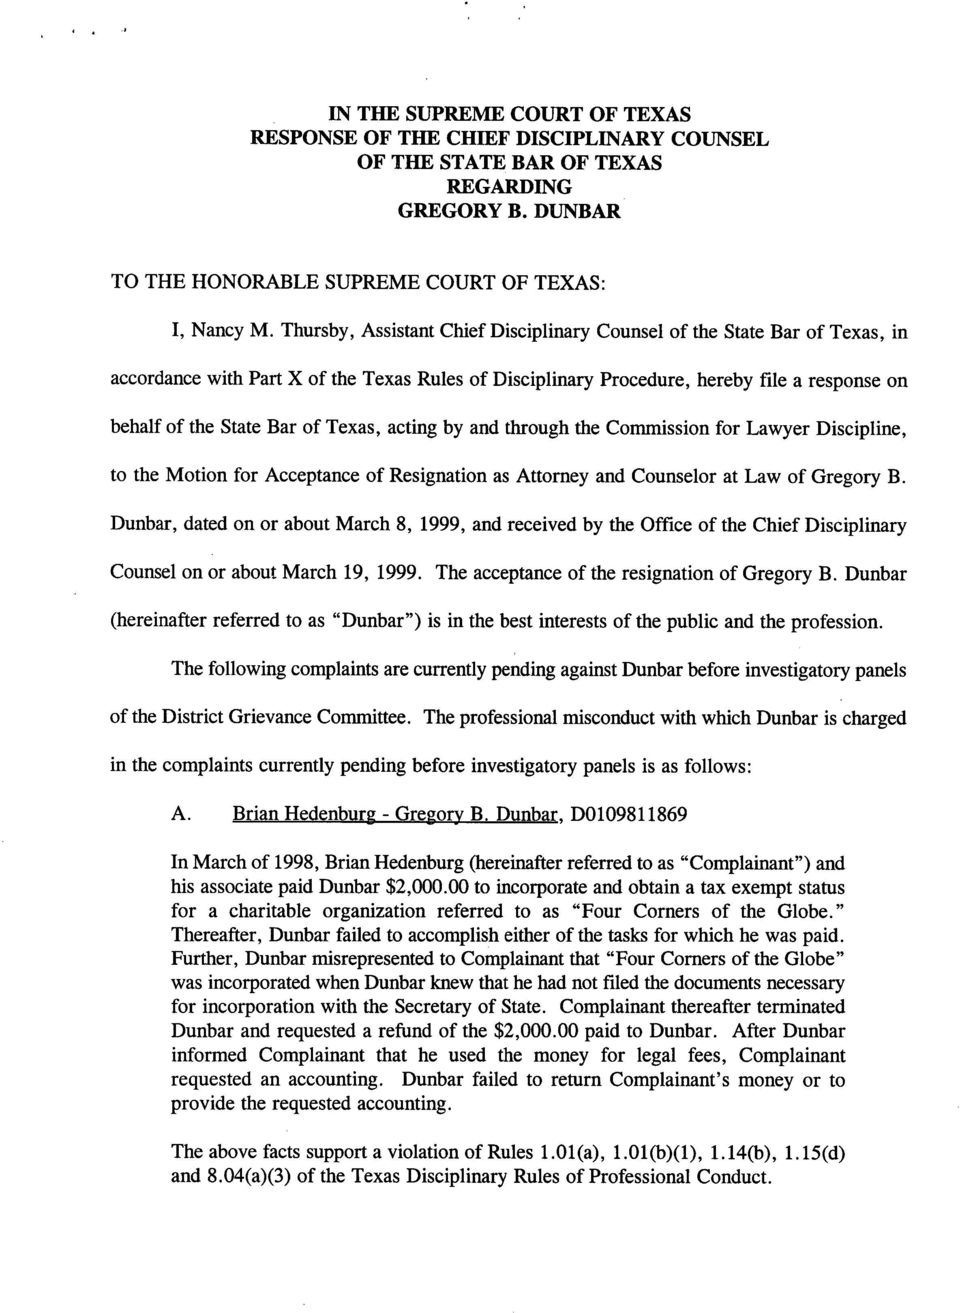 Texas, acting by and through the Commission for Lawyer Discipline, to the Motion for Acceptance of Resignation as Attorney and Counselor at Law of Gregory B.